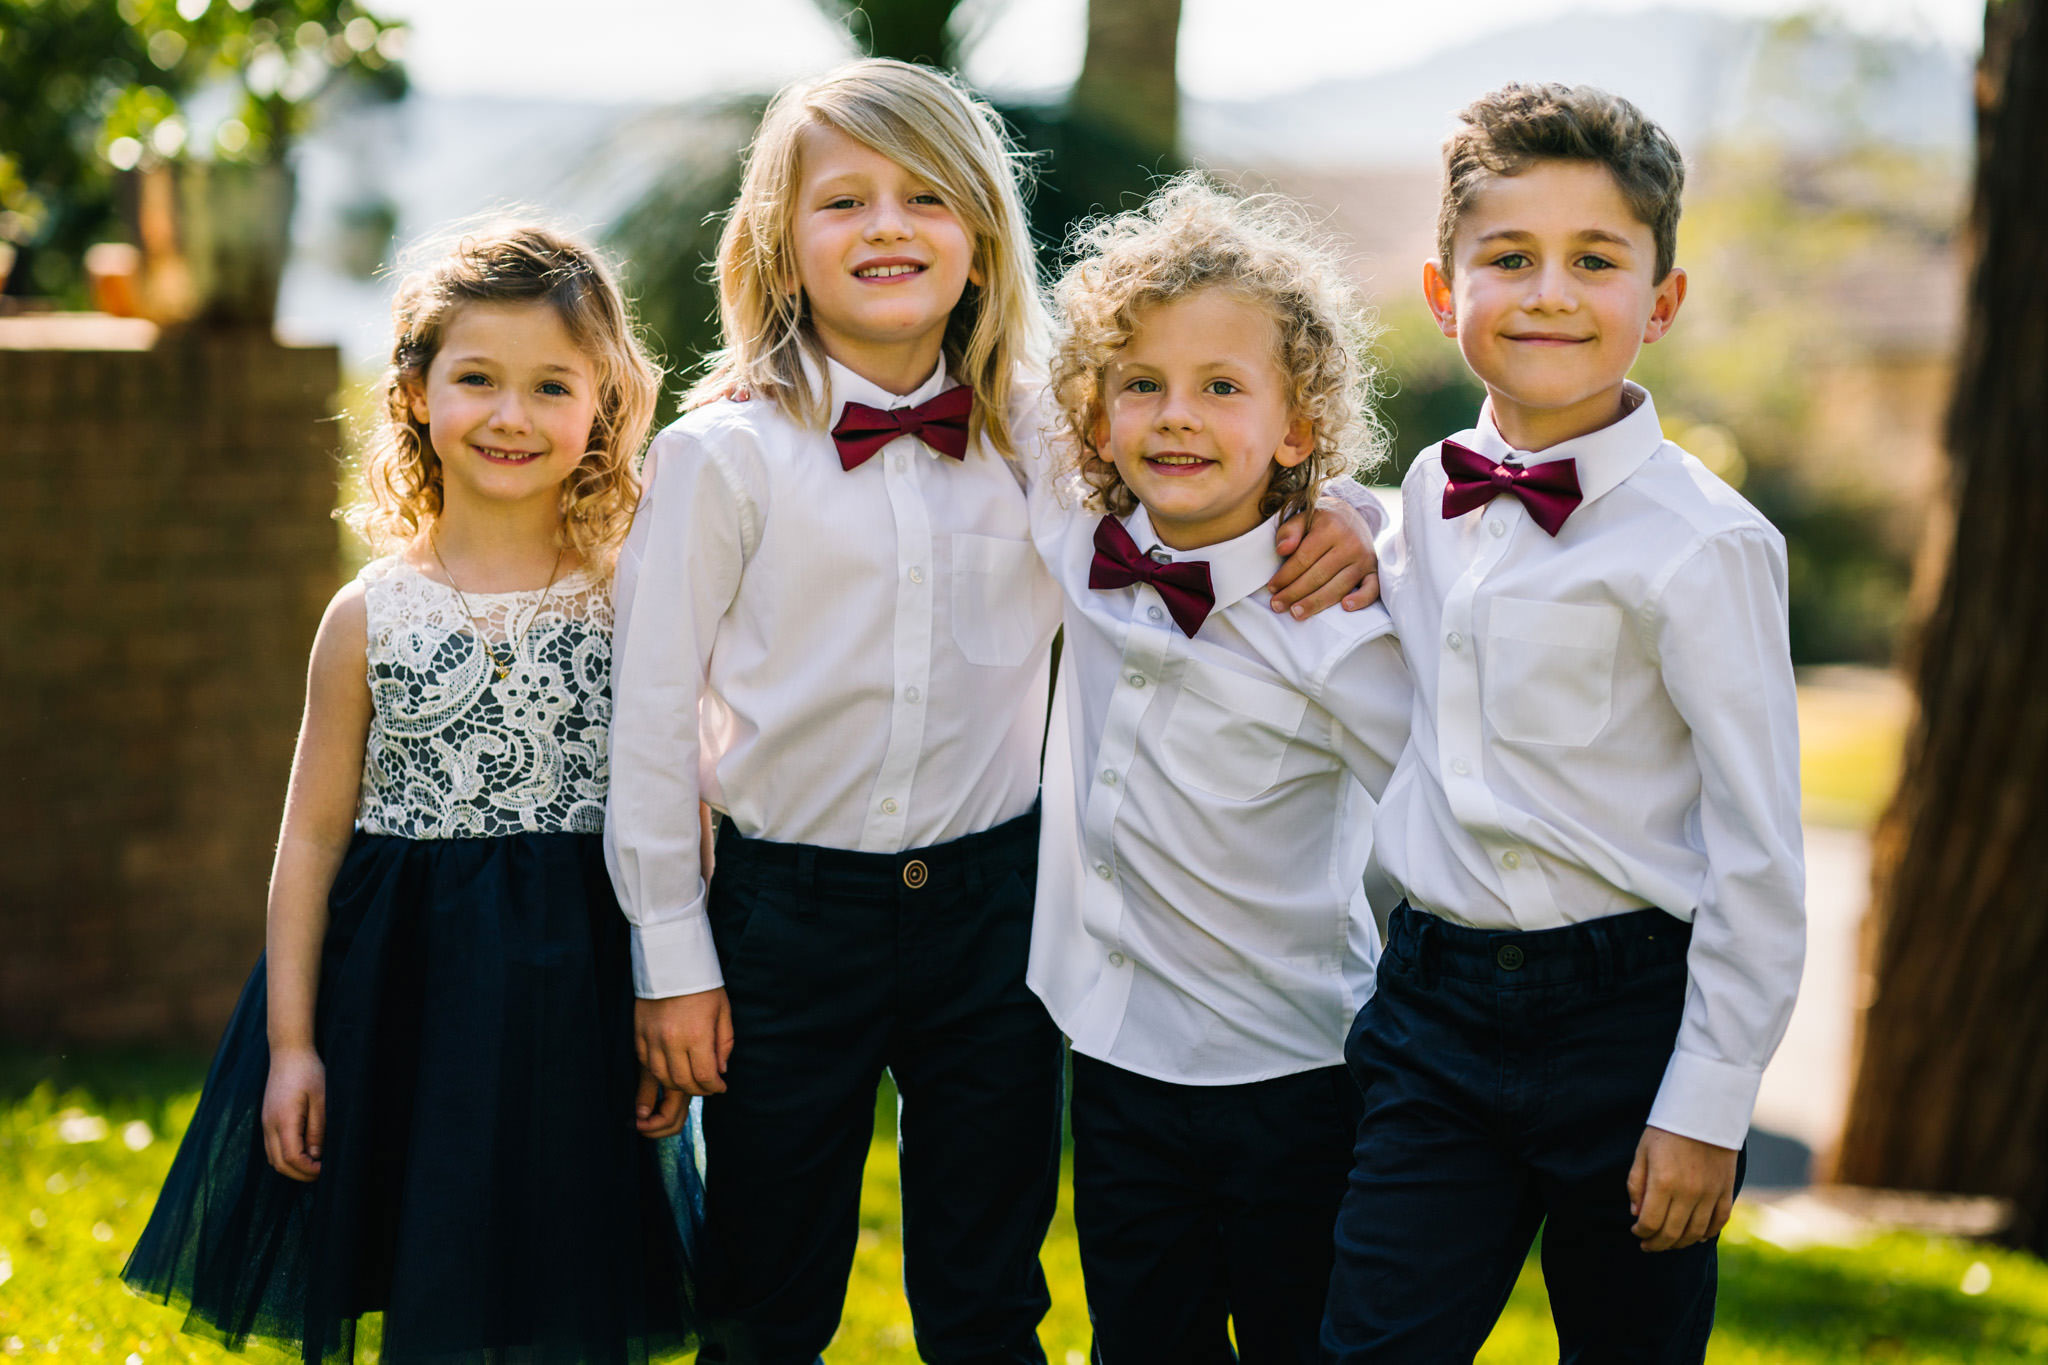 Flower girl and pageboys in bowties smiling